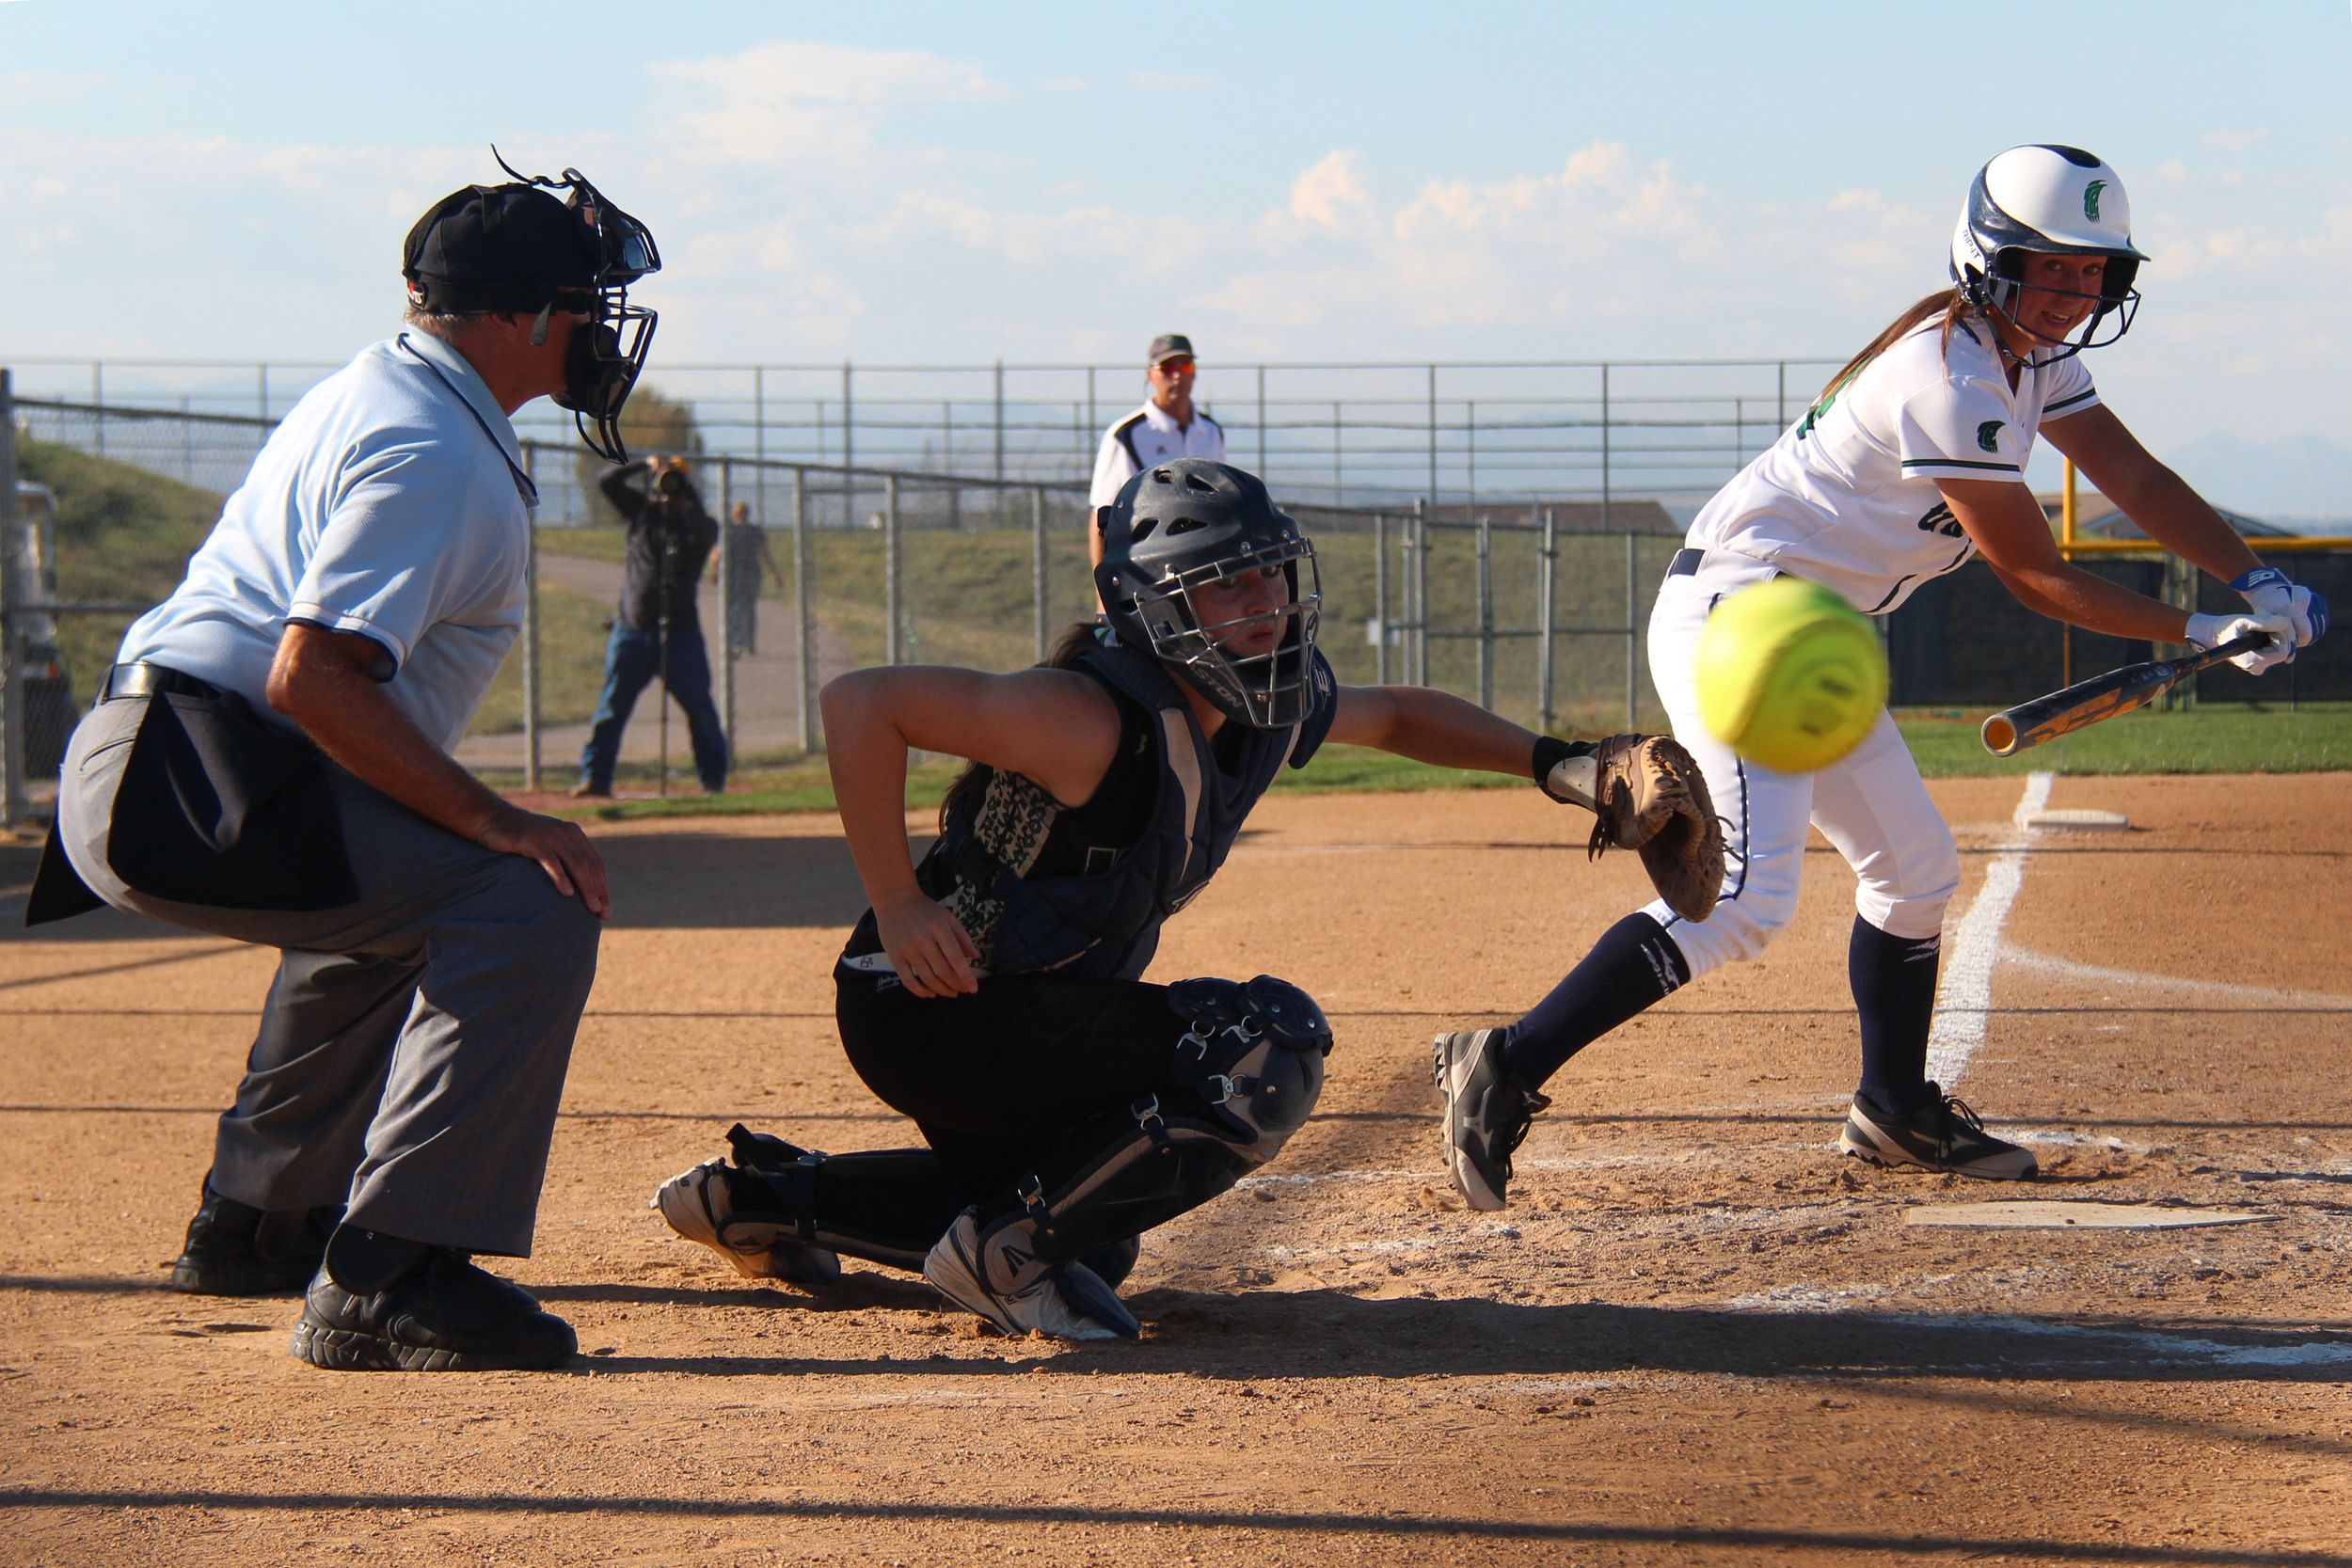 Senior Kelsey Heiland looks to her side as a foul ball heads towards the fence.